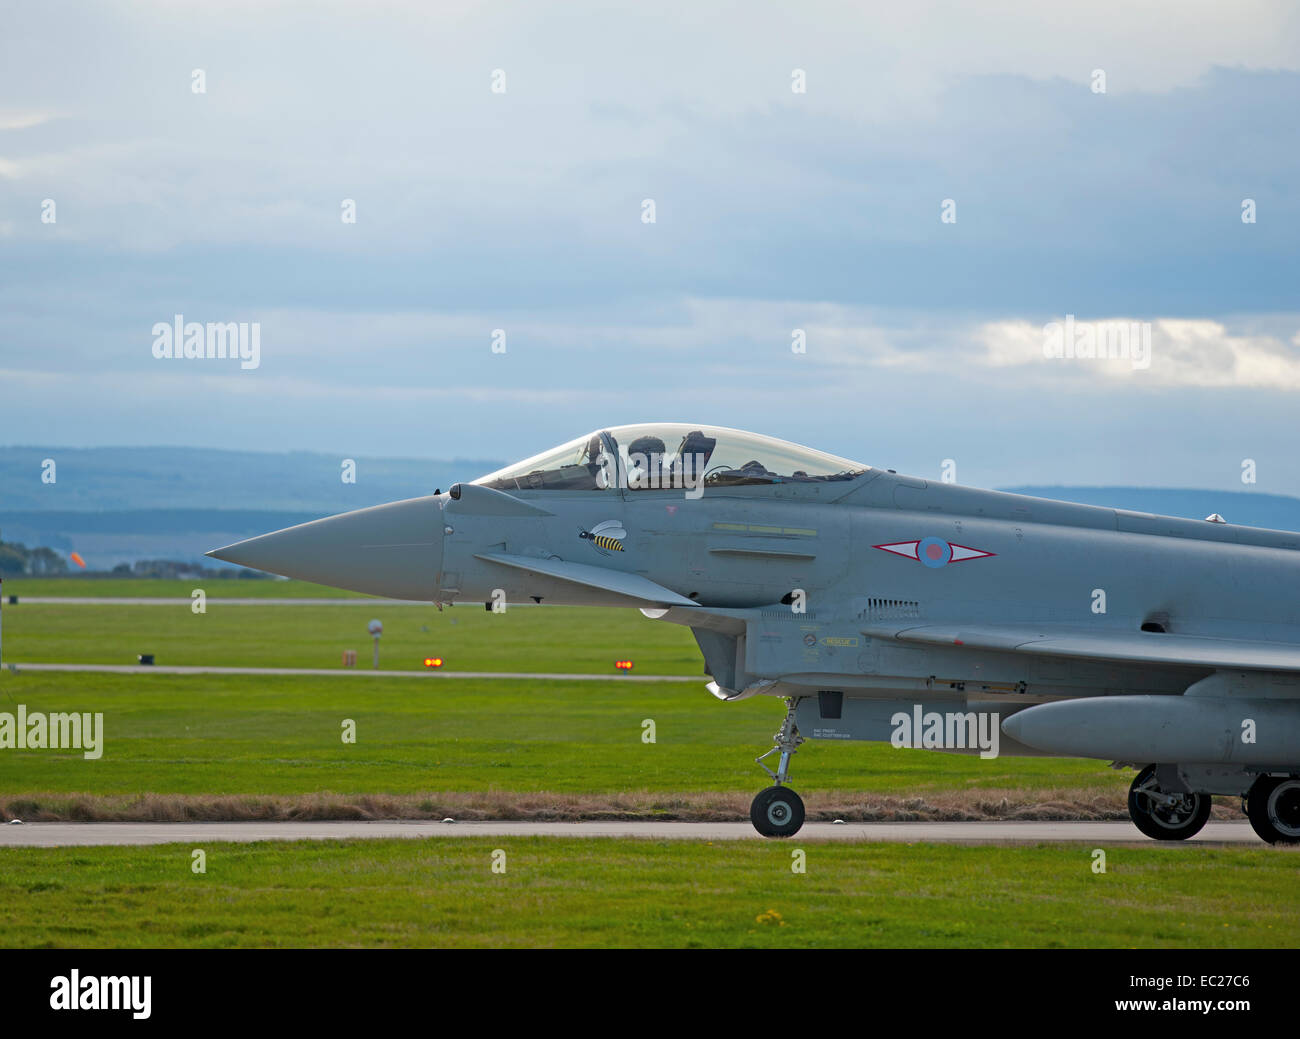 RAF 1 Squadron Eurofighter Typhoon FRG4 Fast Jet on runway taxi way.   SCO 9296. - Stock Image